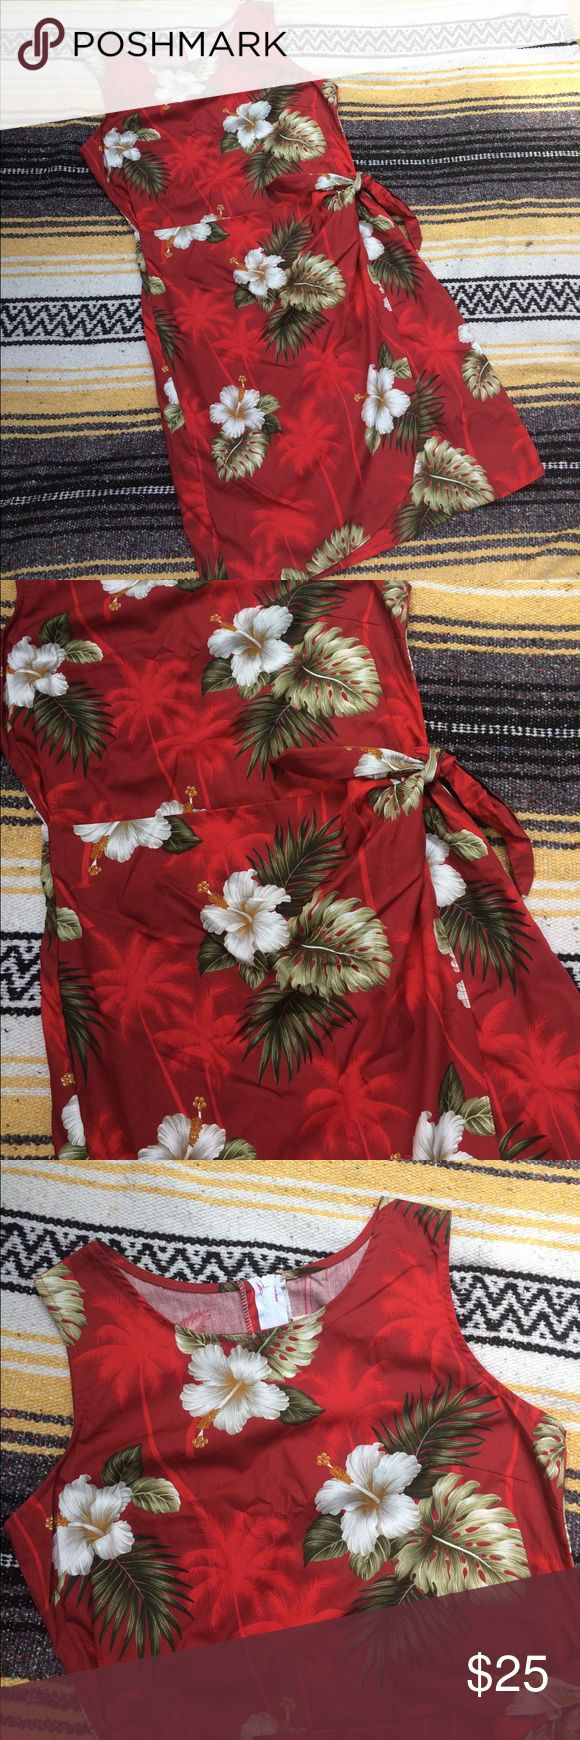 """Vintage Red Hawaiian Dress Tropical Hawaiian style vintage dress. This appears to have never been worn! It still has s price tag sticker on the tag. Faux wrap skirt/ apron on the front, zip up back. 100% cotton. Made in Hawaii, USA 🇺🇸 ☕️️ flat measurements ☕️️ bust: 19"""" // length: 28"""" // waist: 16"""" // size M Vintage Dresses Midi"""